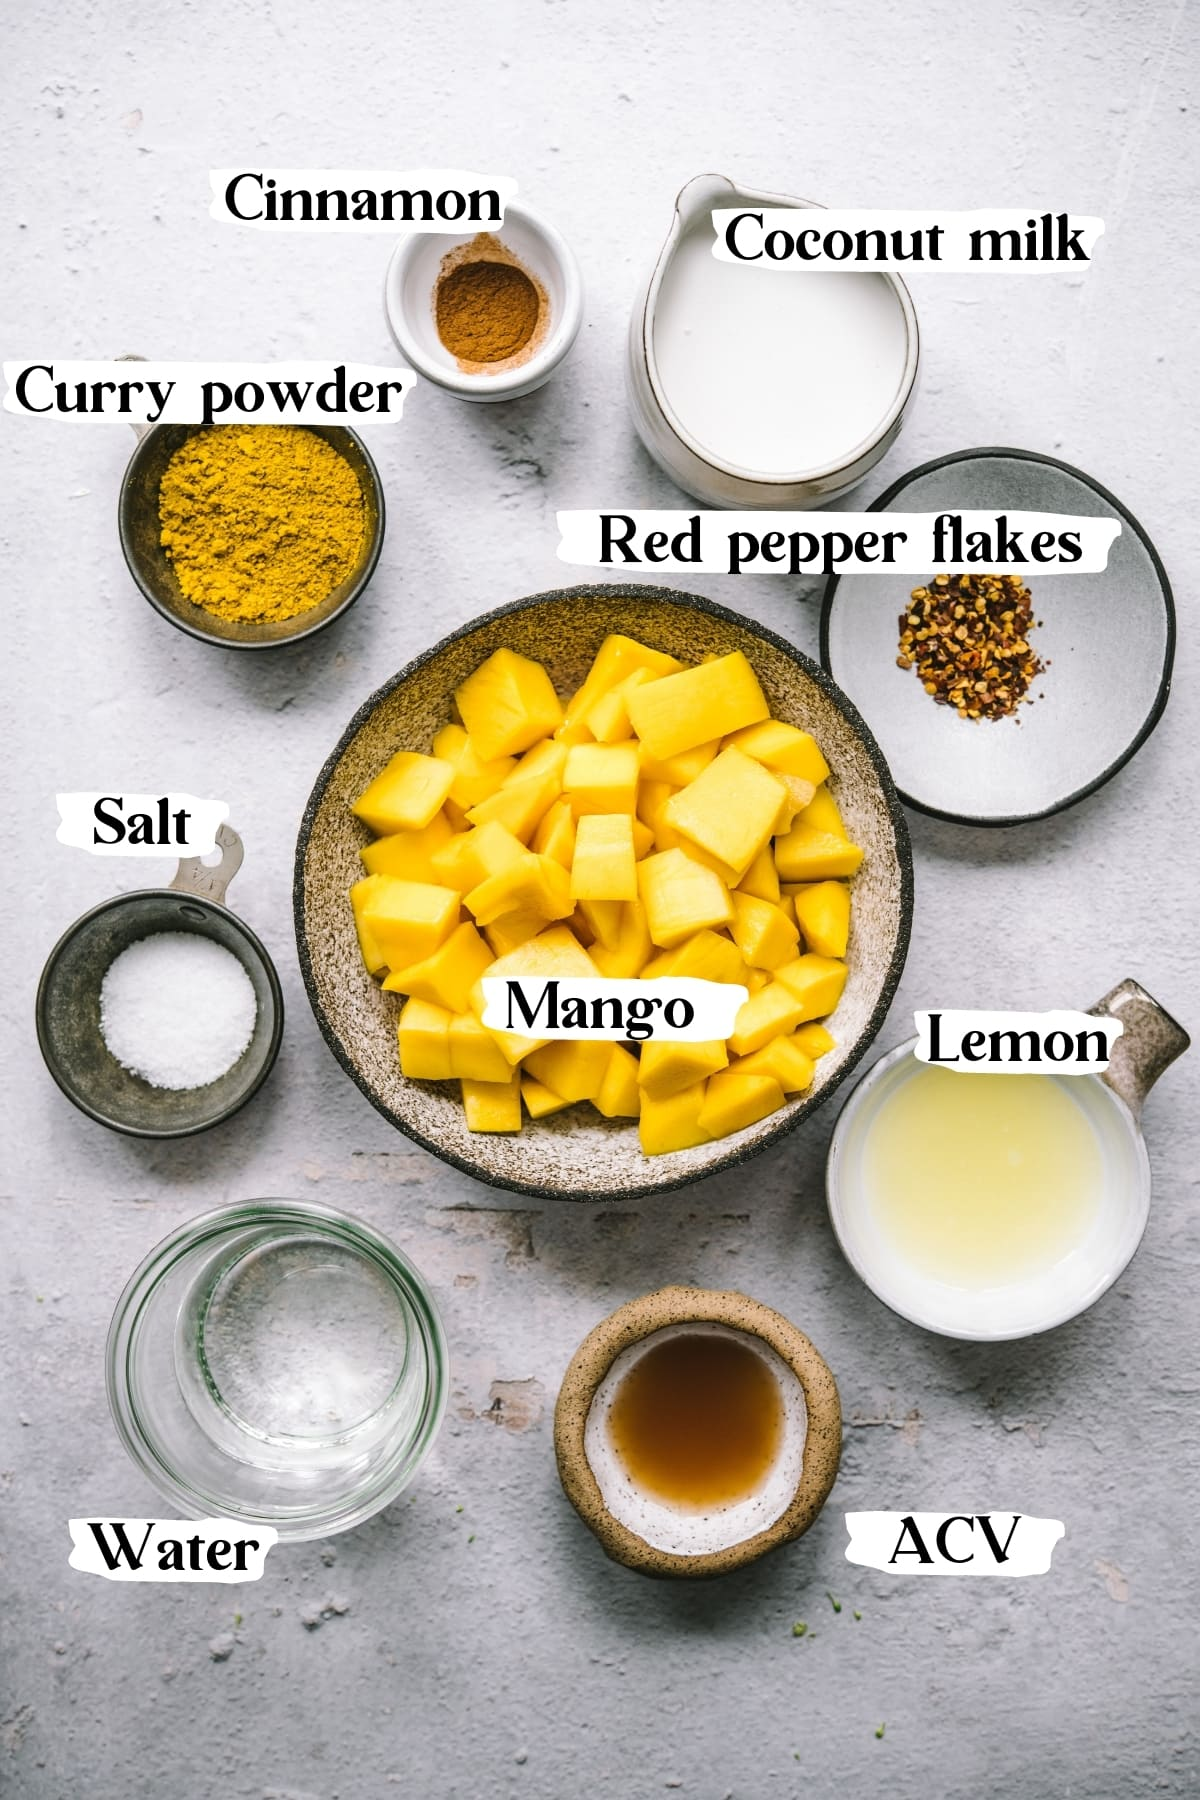 overhead view of ingredients for mango curry sauce.